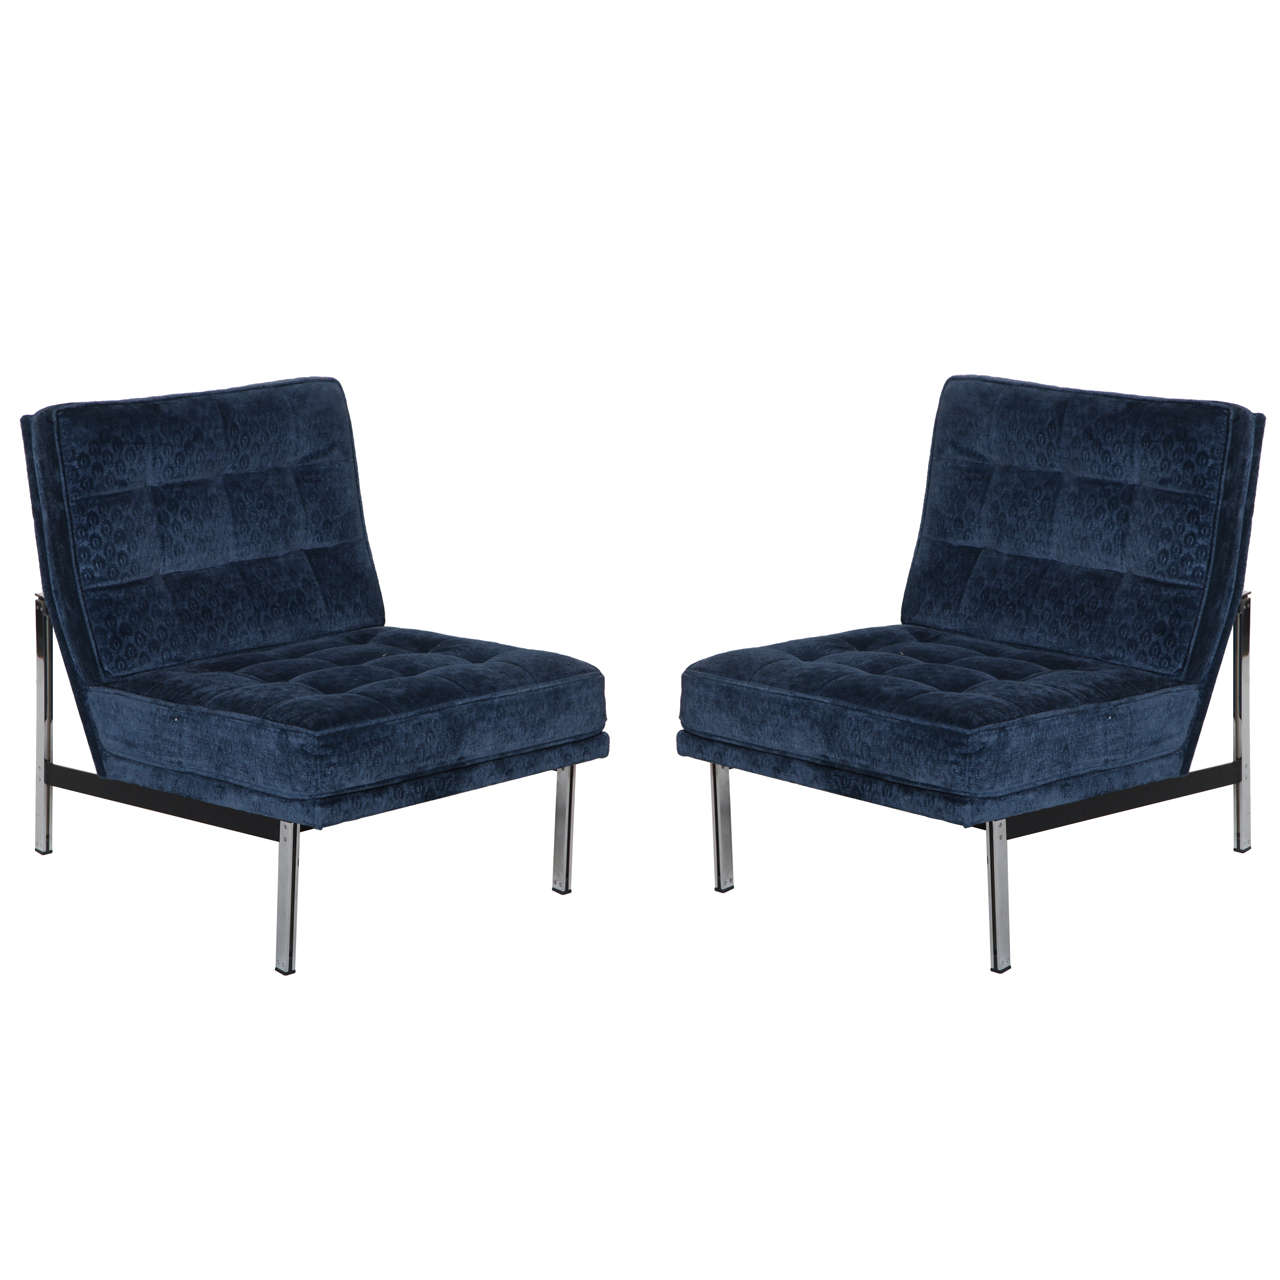 Pair of parallel bar lounge slipper chairs by florence